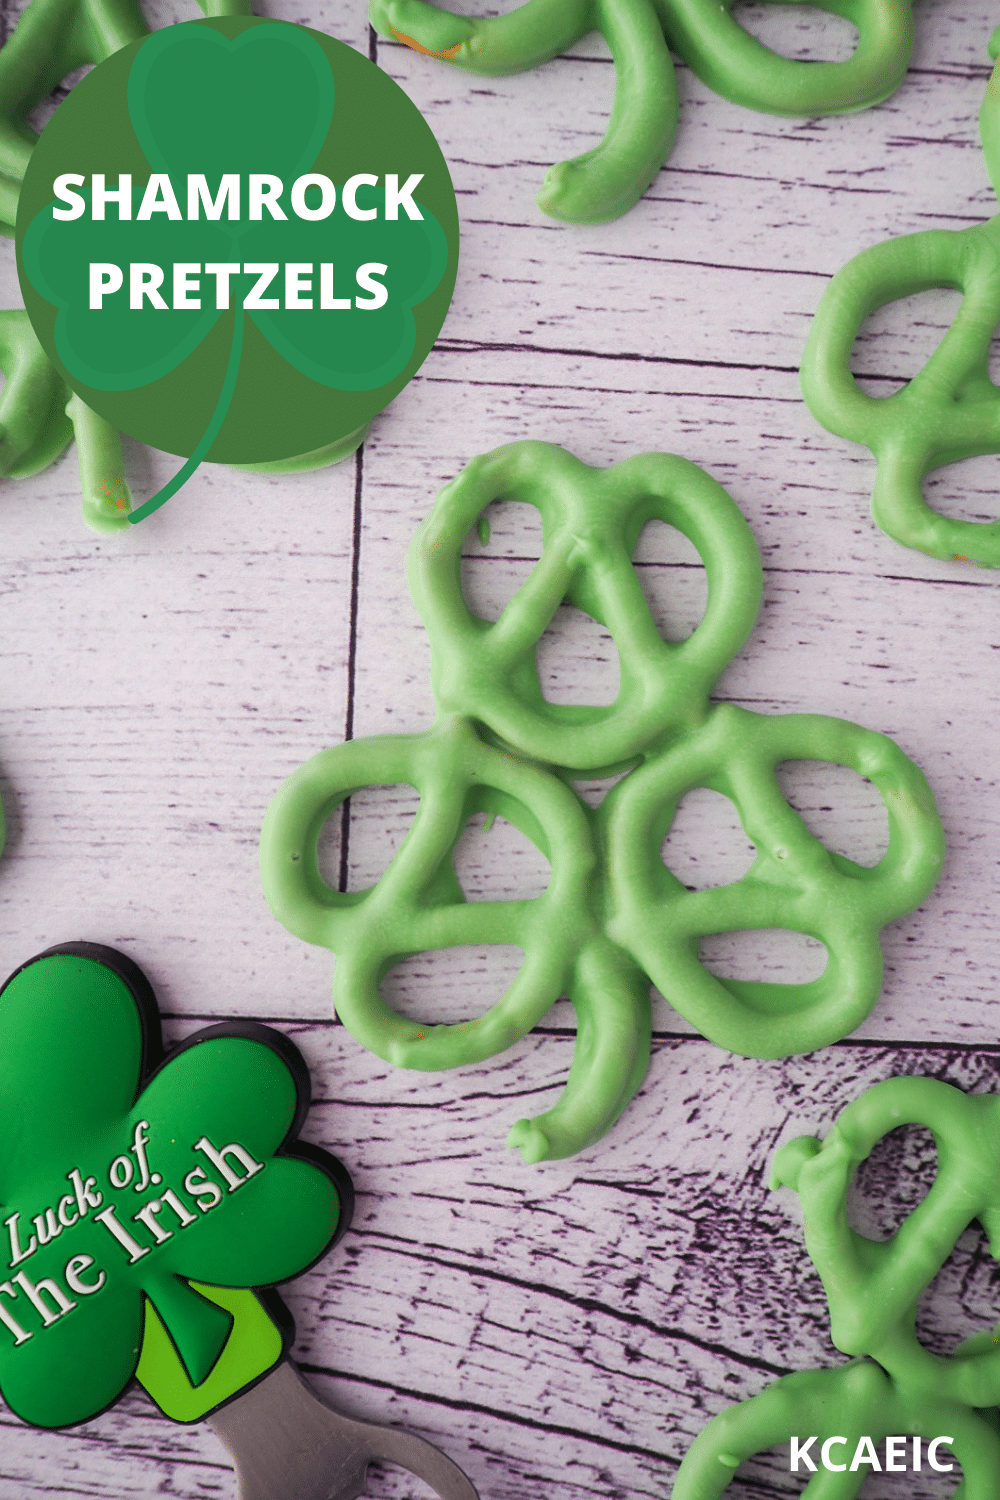 Shamrock pretzels with shamrock figurine with 'Luck of the Irish' written on it and text overlay, Shamrock pretzels and KCAEIC.